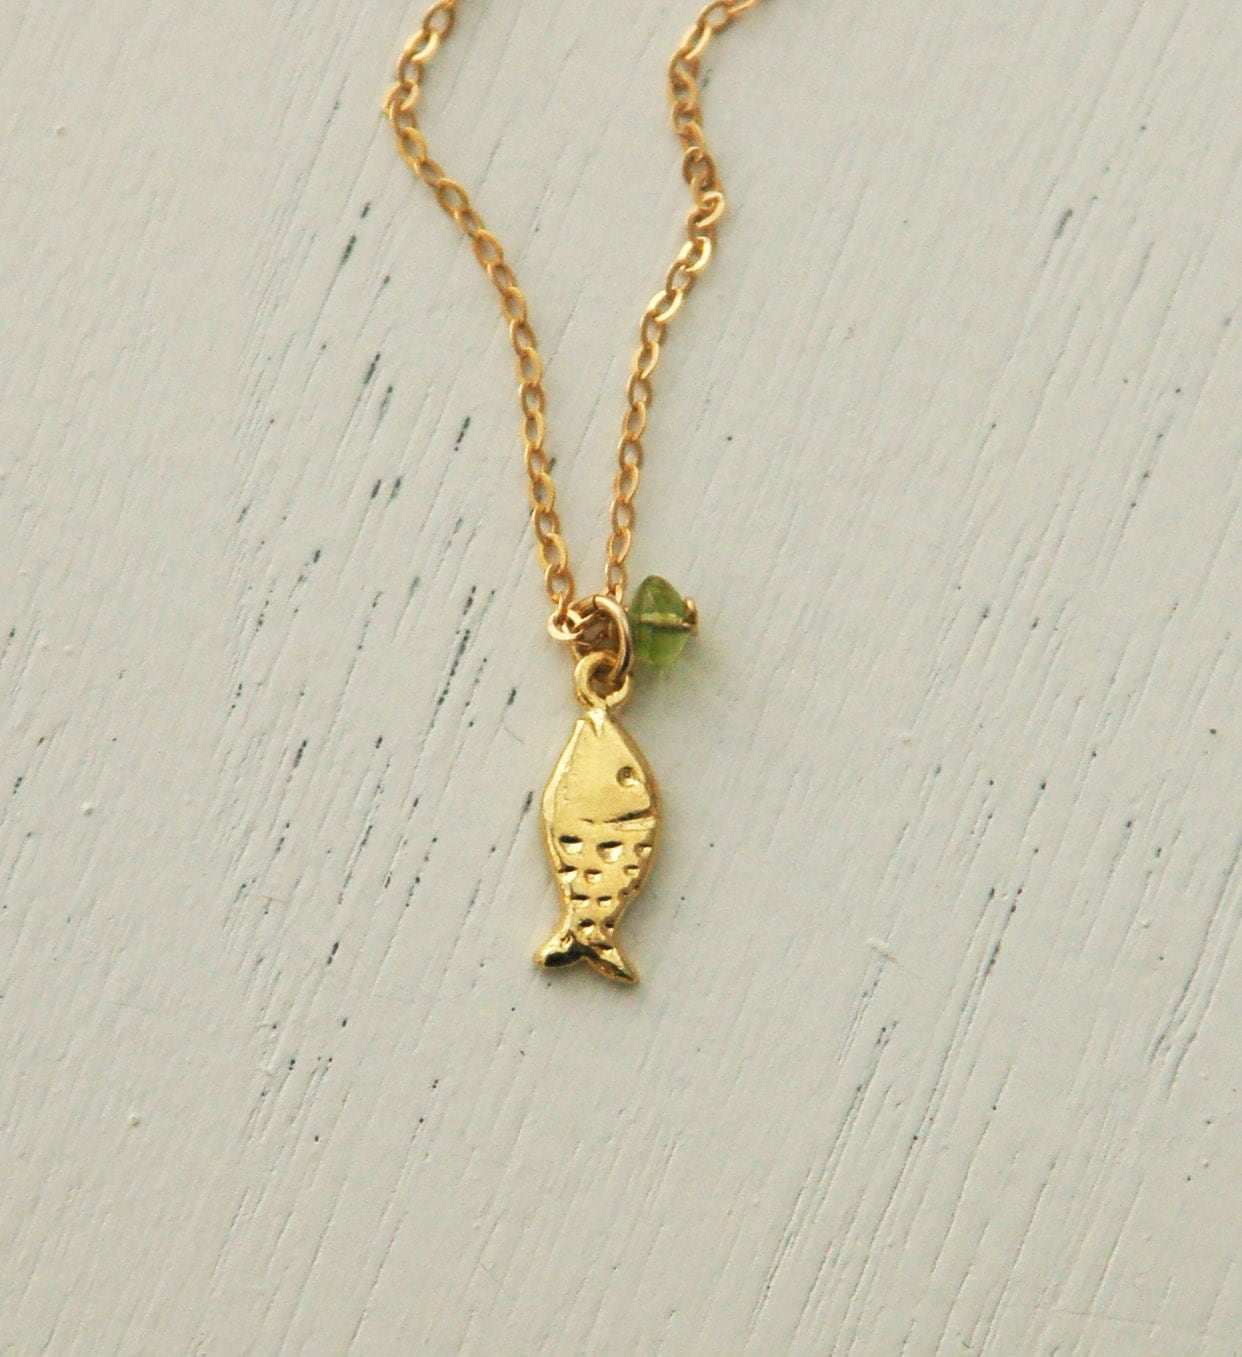 Tiny charm necklace lucky gold fish charm pendant gold for Gold fish charm